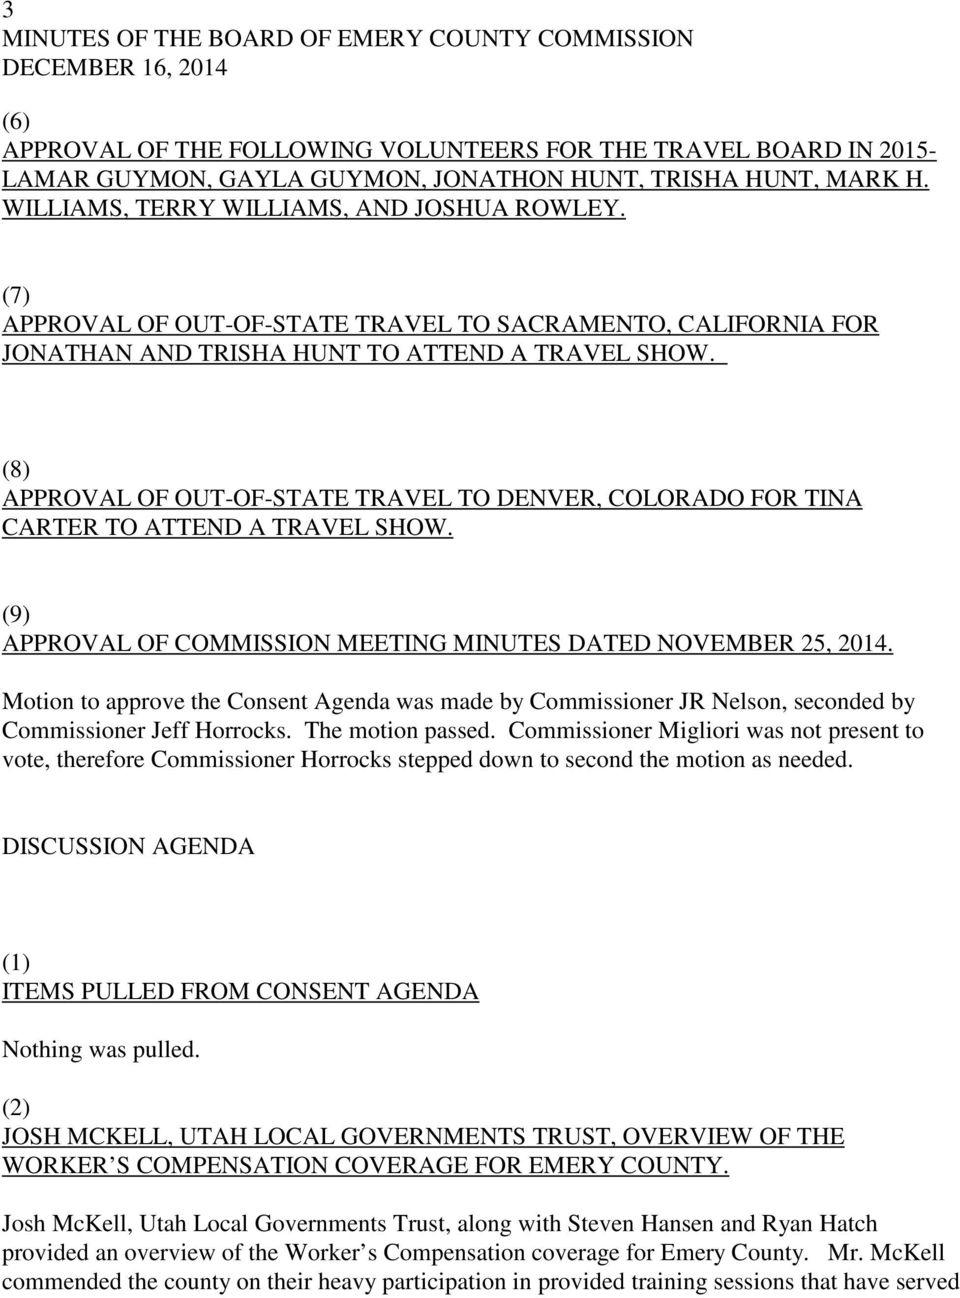 (8) APPROVAL OF OUT-OF-STATE TRAVEL TO DENVER, COLORADO FOR TINA CARTER TO ATTEND A TRAVEL SHOW. (9) APPROVAL OF COMMISSION MEETING MINUTES DATED NOVEMBER 25, 2014.